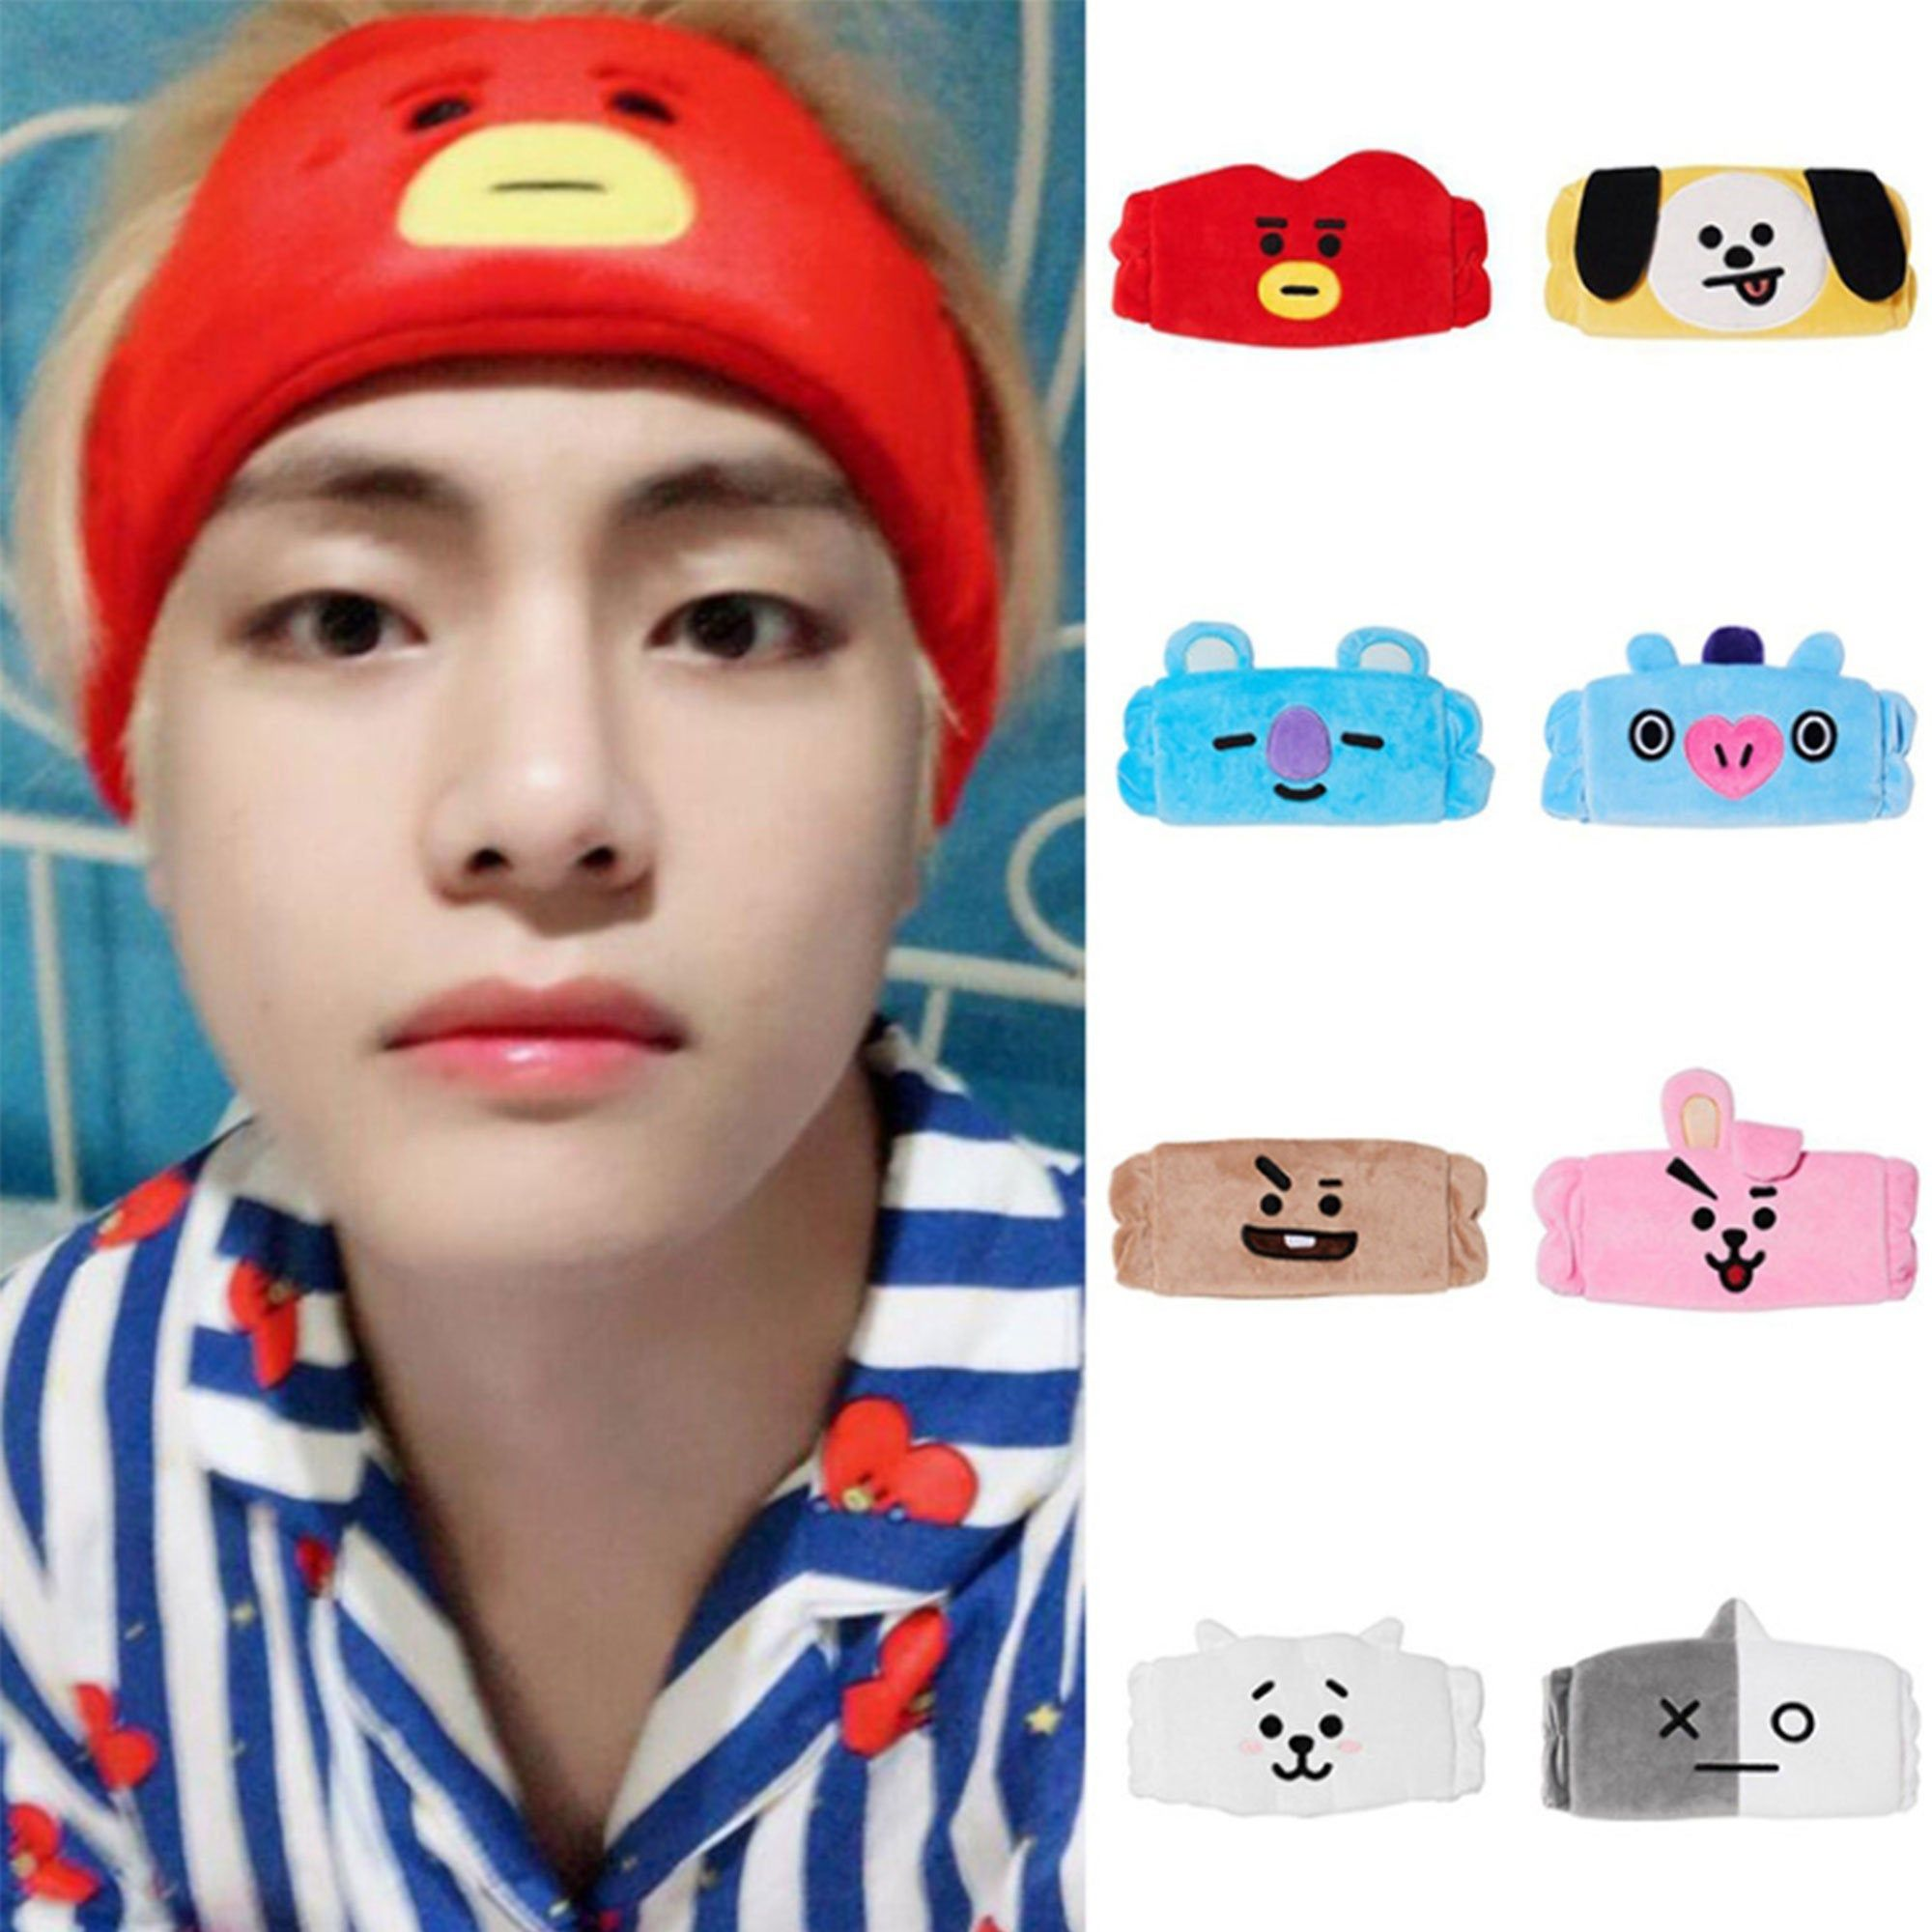 Bts Headband Bt21 Headband Bt21 Cooky Bt21 Tata Bt21 Chimmy Bt21 Rj Bts Merch Bts Kpop Unofficial By Ukistationery On En 2020 Bandas Para El Cabello Ropa Bts Diademas